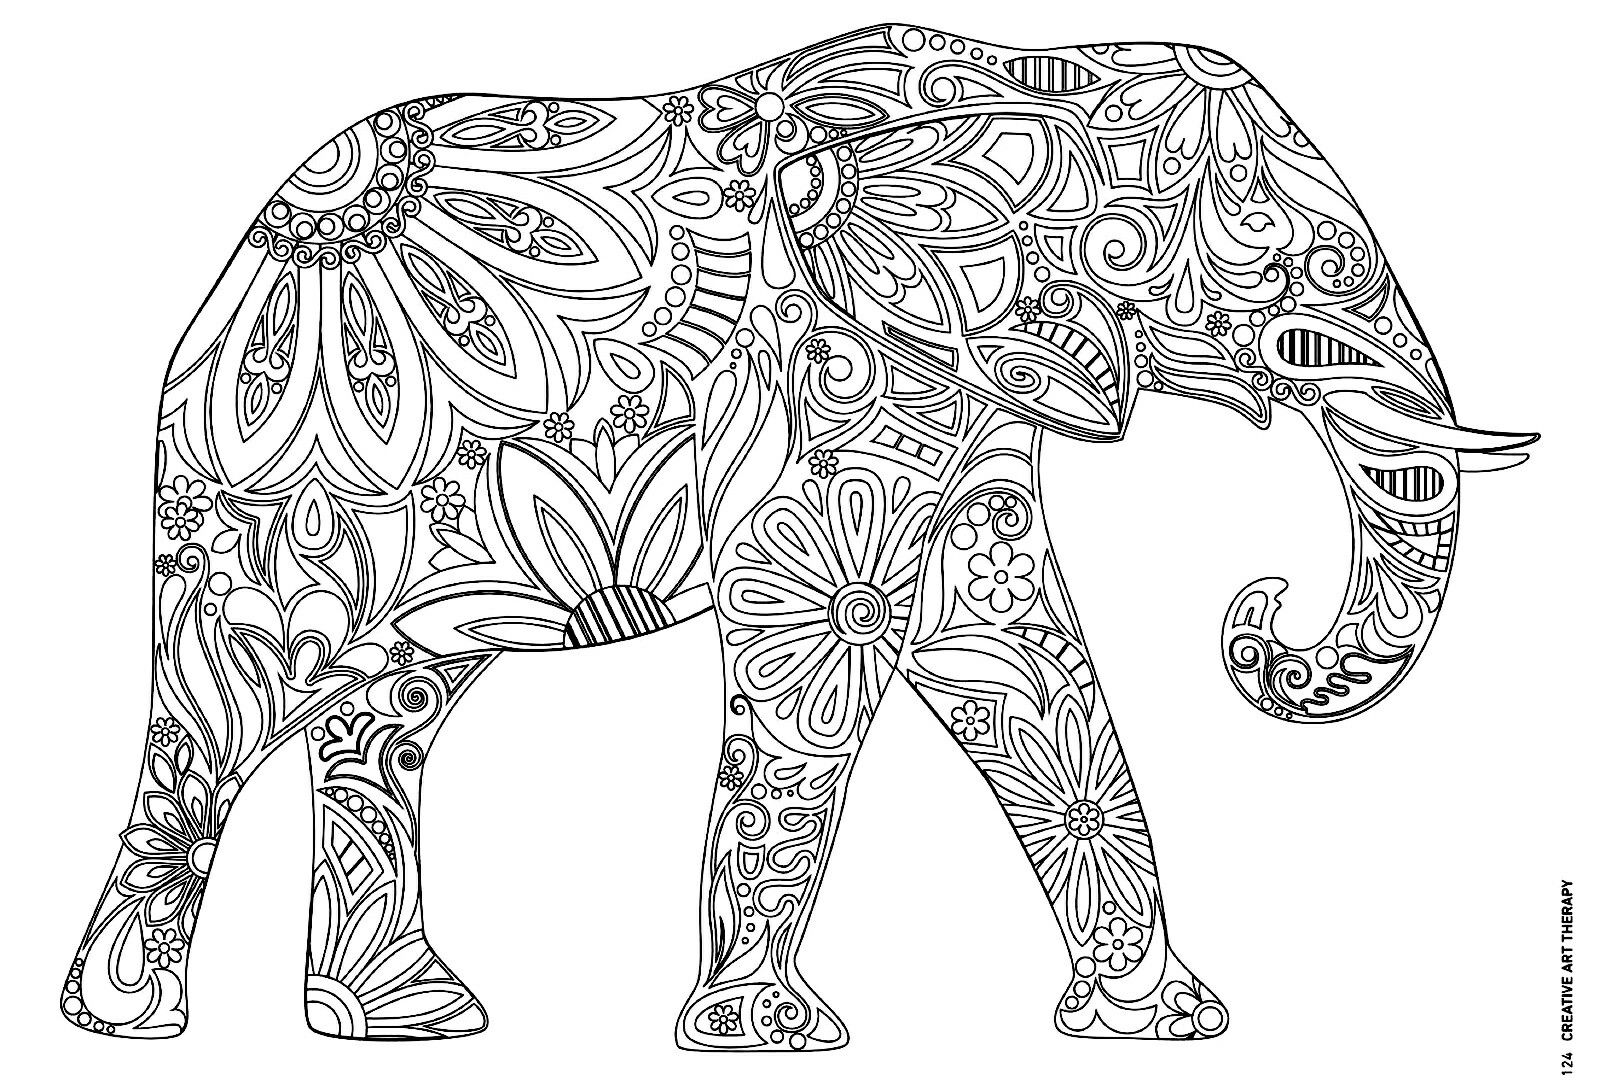 Printable Art Therapy Elefants - Worksheet & Coloring Pages